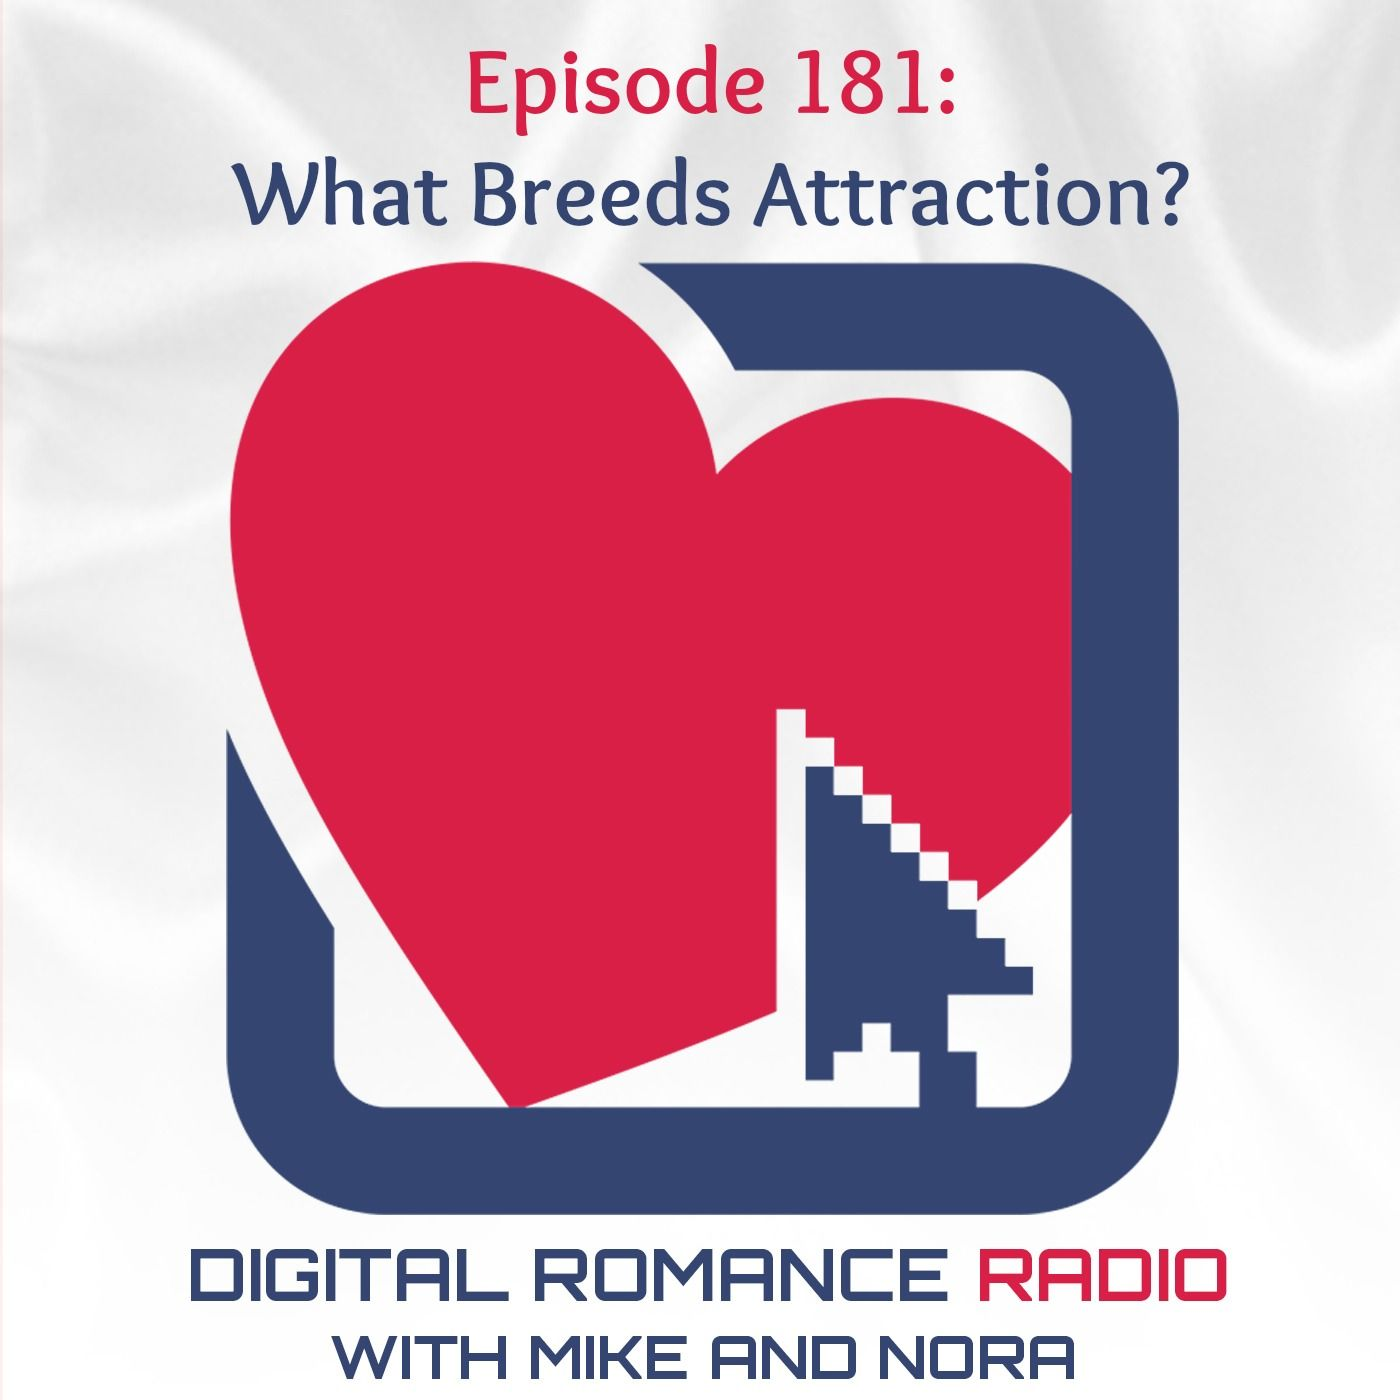 Why are we attracted to the people we are attracted to? In today's episode, Michael explores where attraction comes from, how to become more attractive and understand attraction in a whole new light. Listen here!